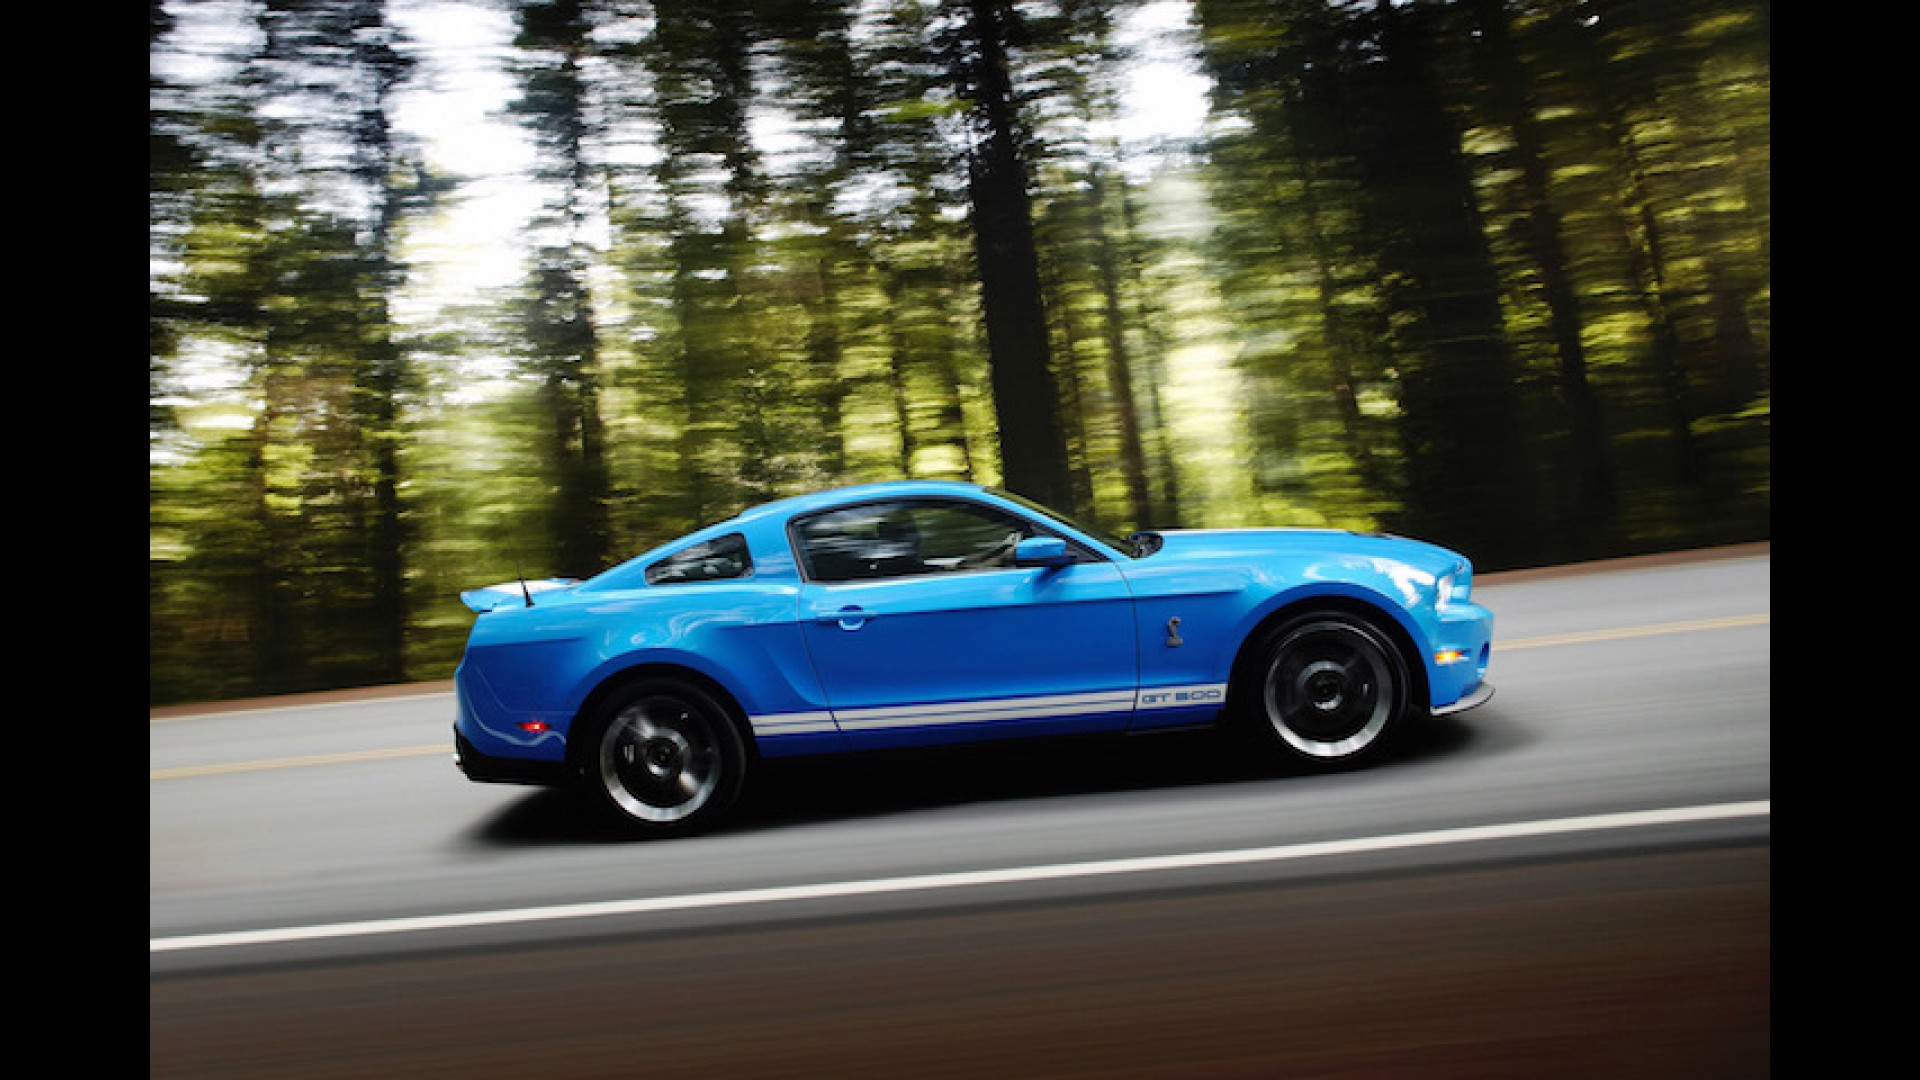 ford s next shelby mustang could have 800 horsepower. Black Bedroom Furniture Sets. Home Design Ideas